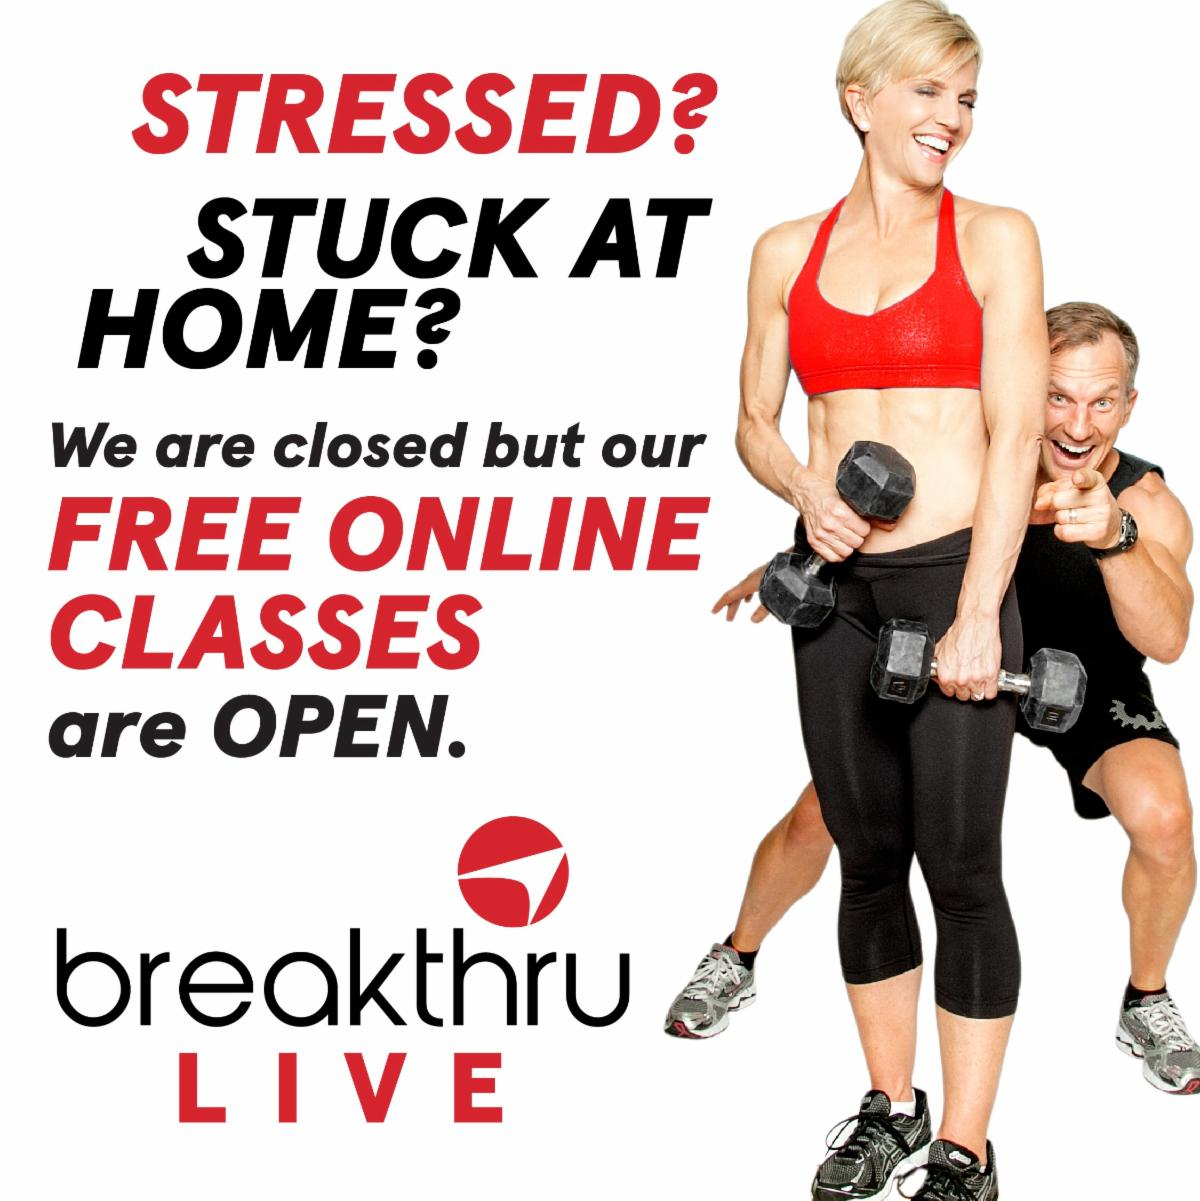 Breakthru-Fitness